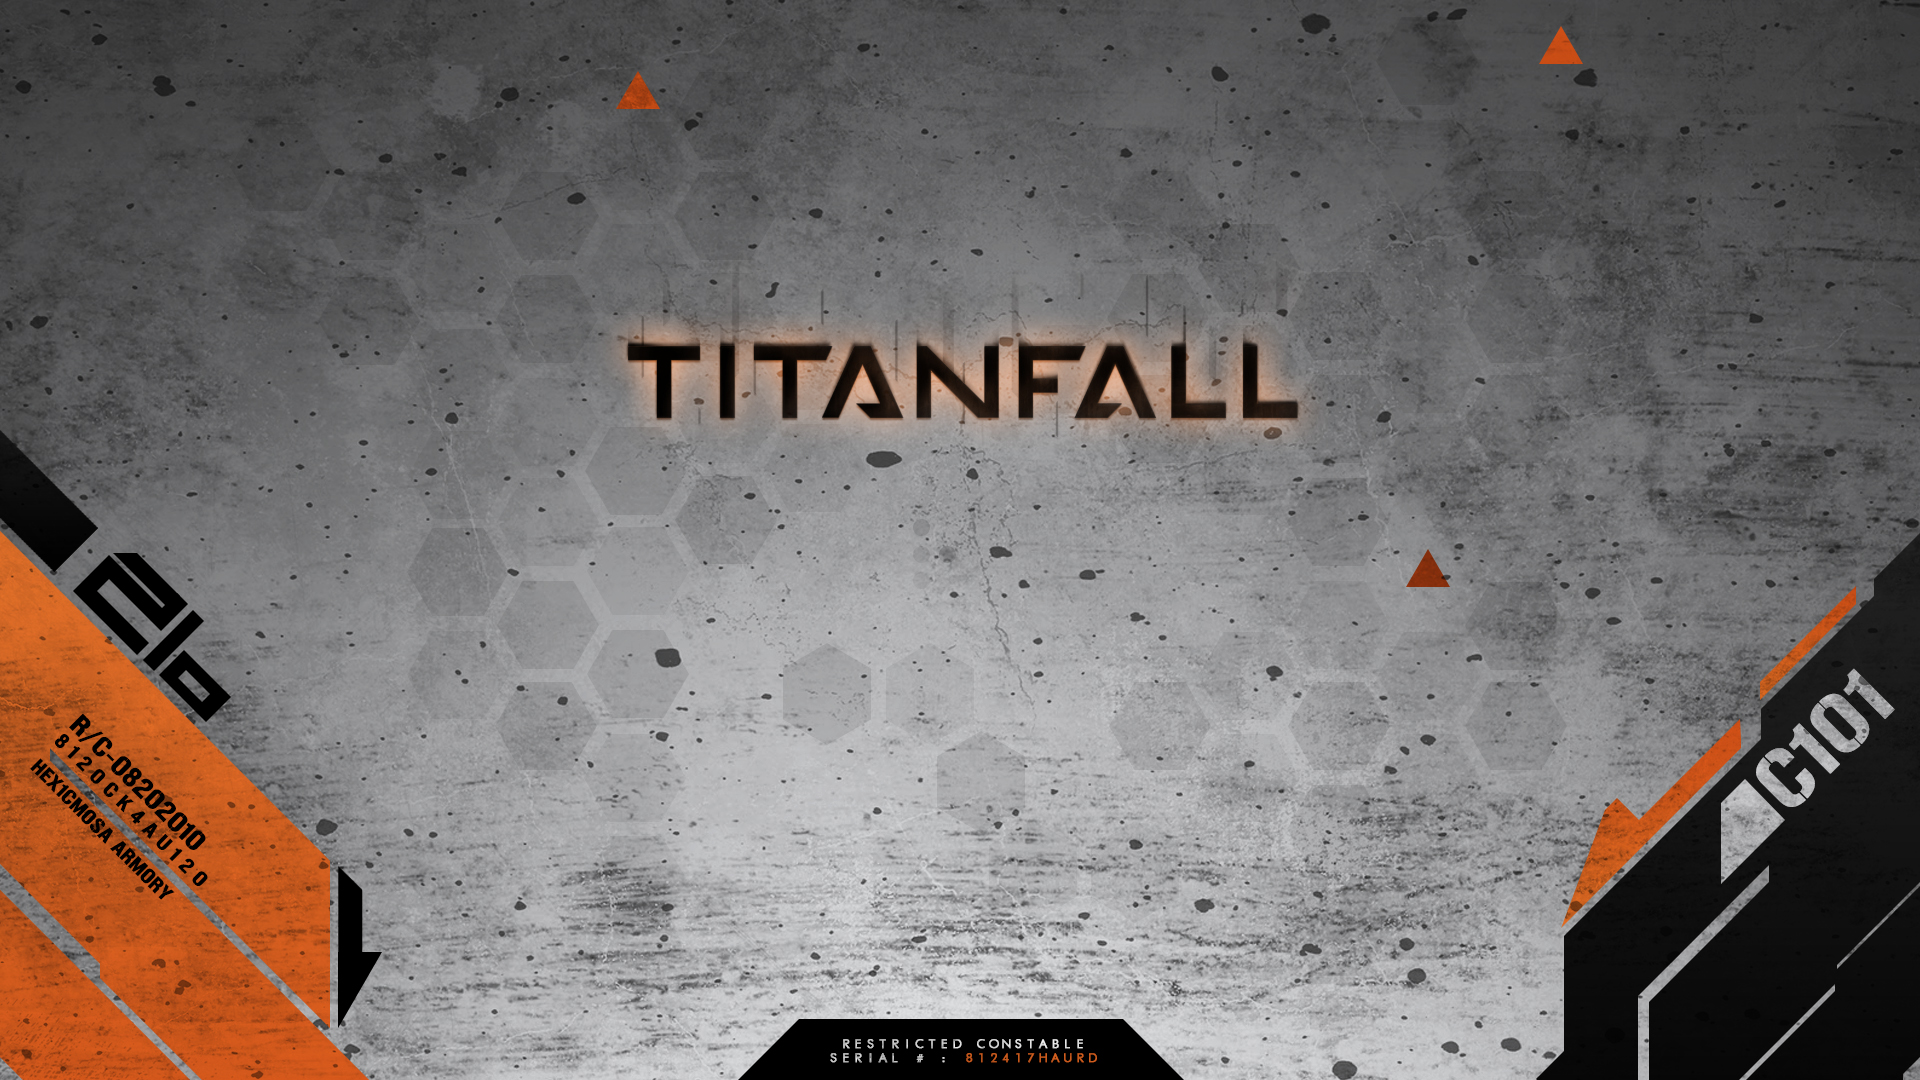 Titanfall Dirty Wallpaper HD by solidcell